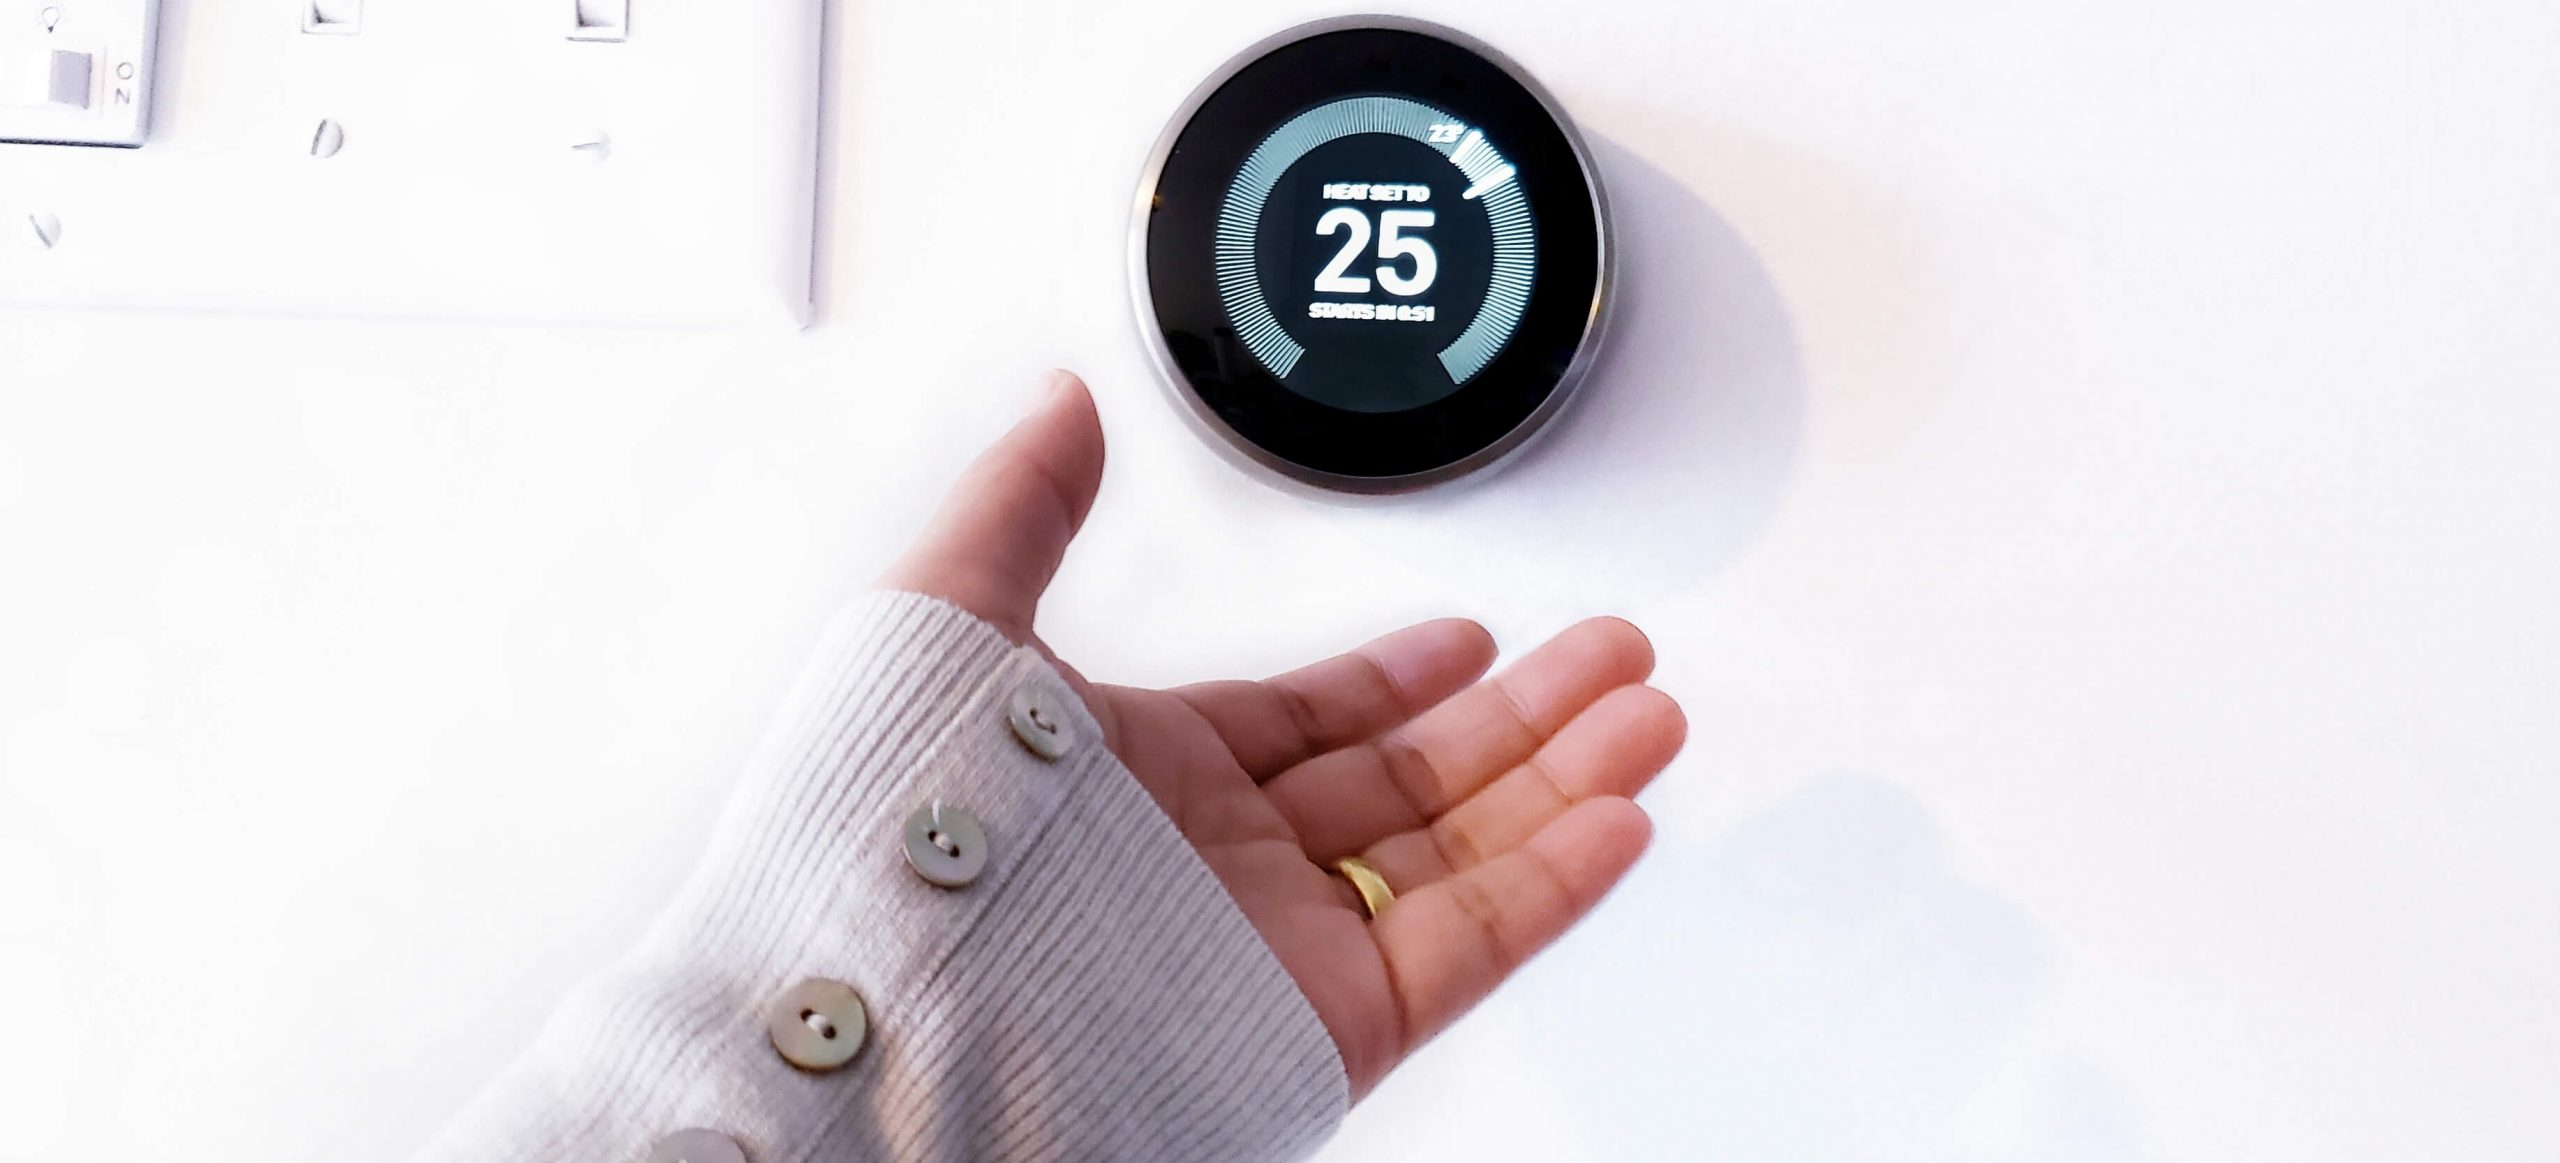 How to Choose a Smart Heating Thermostat | My Plumber Guide